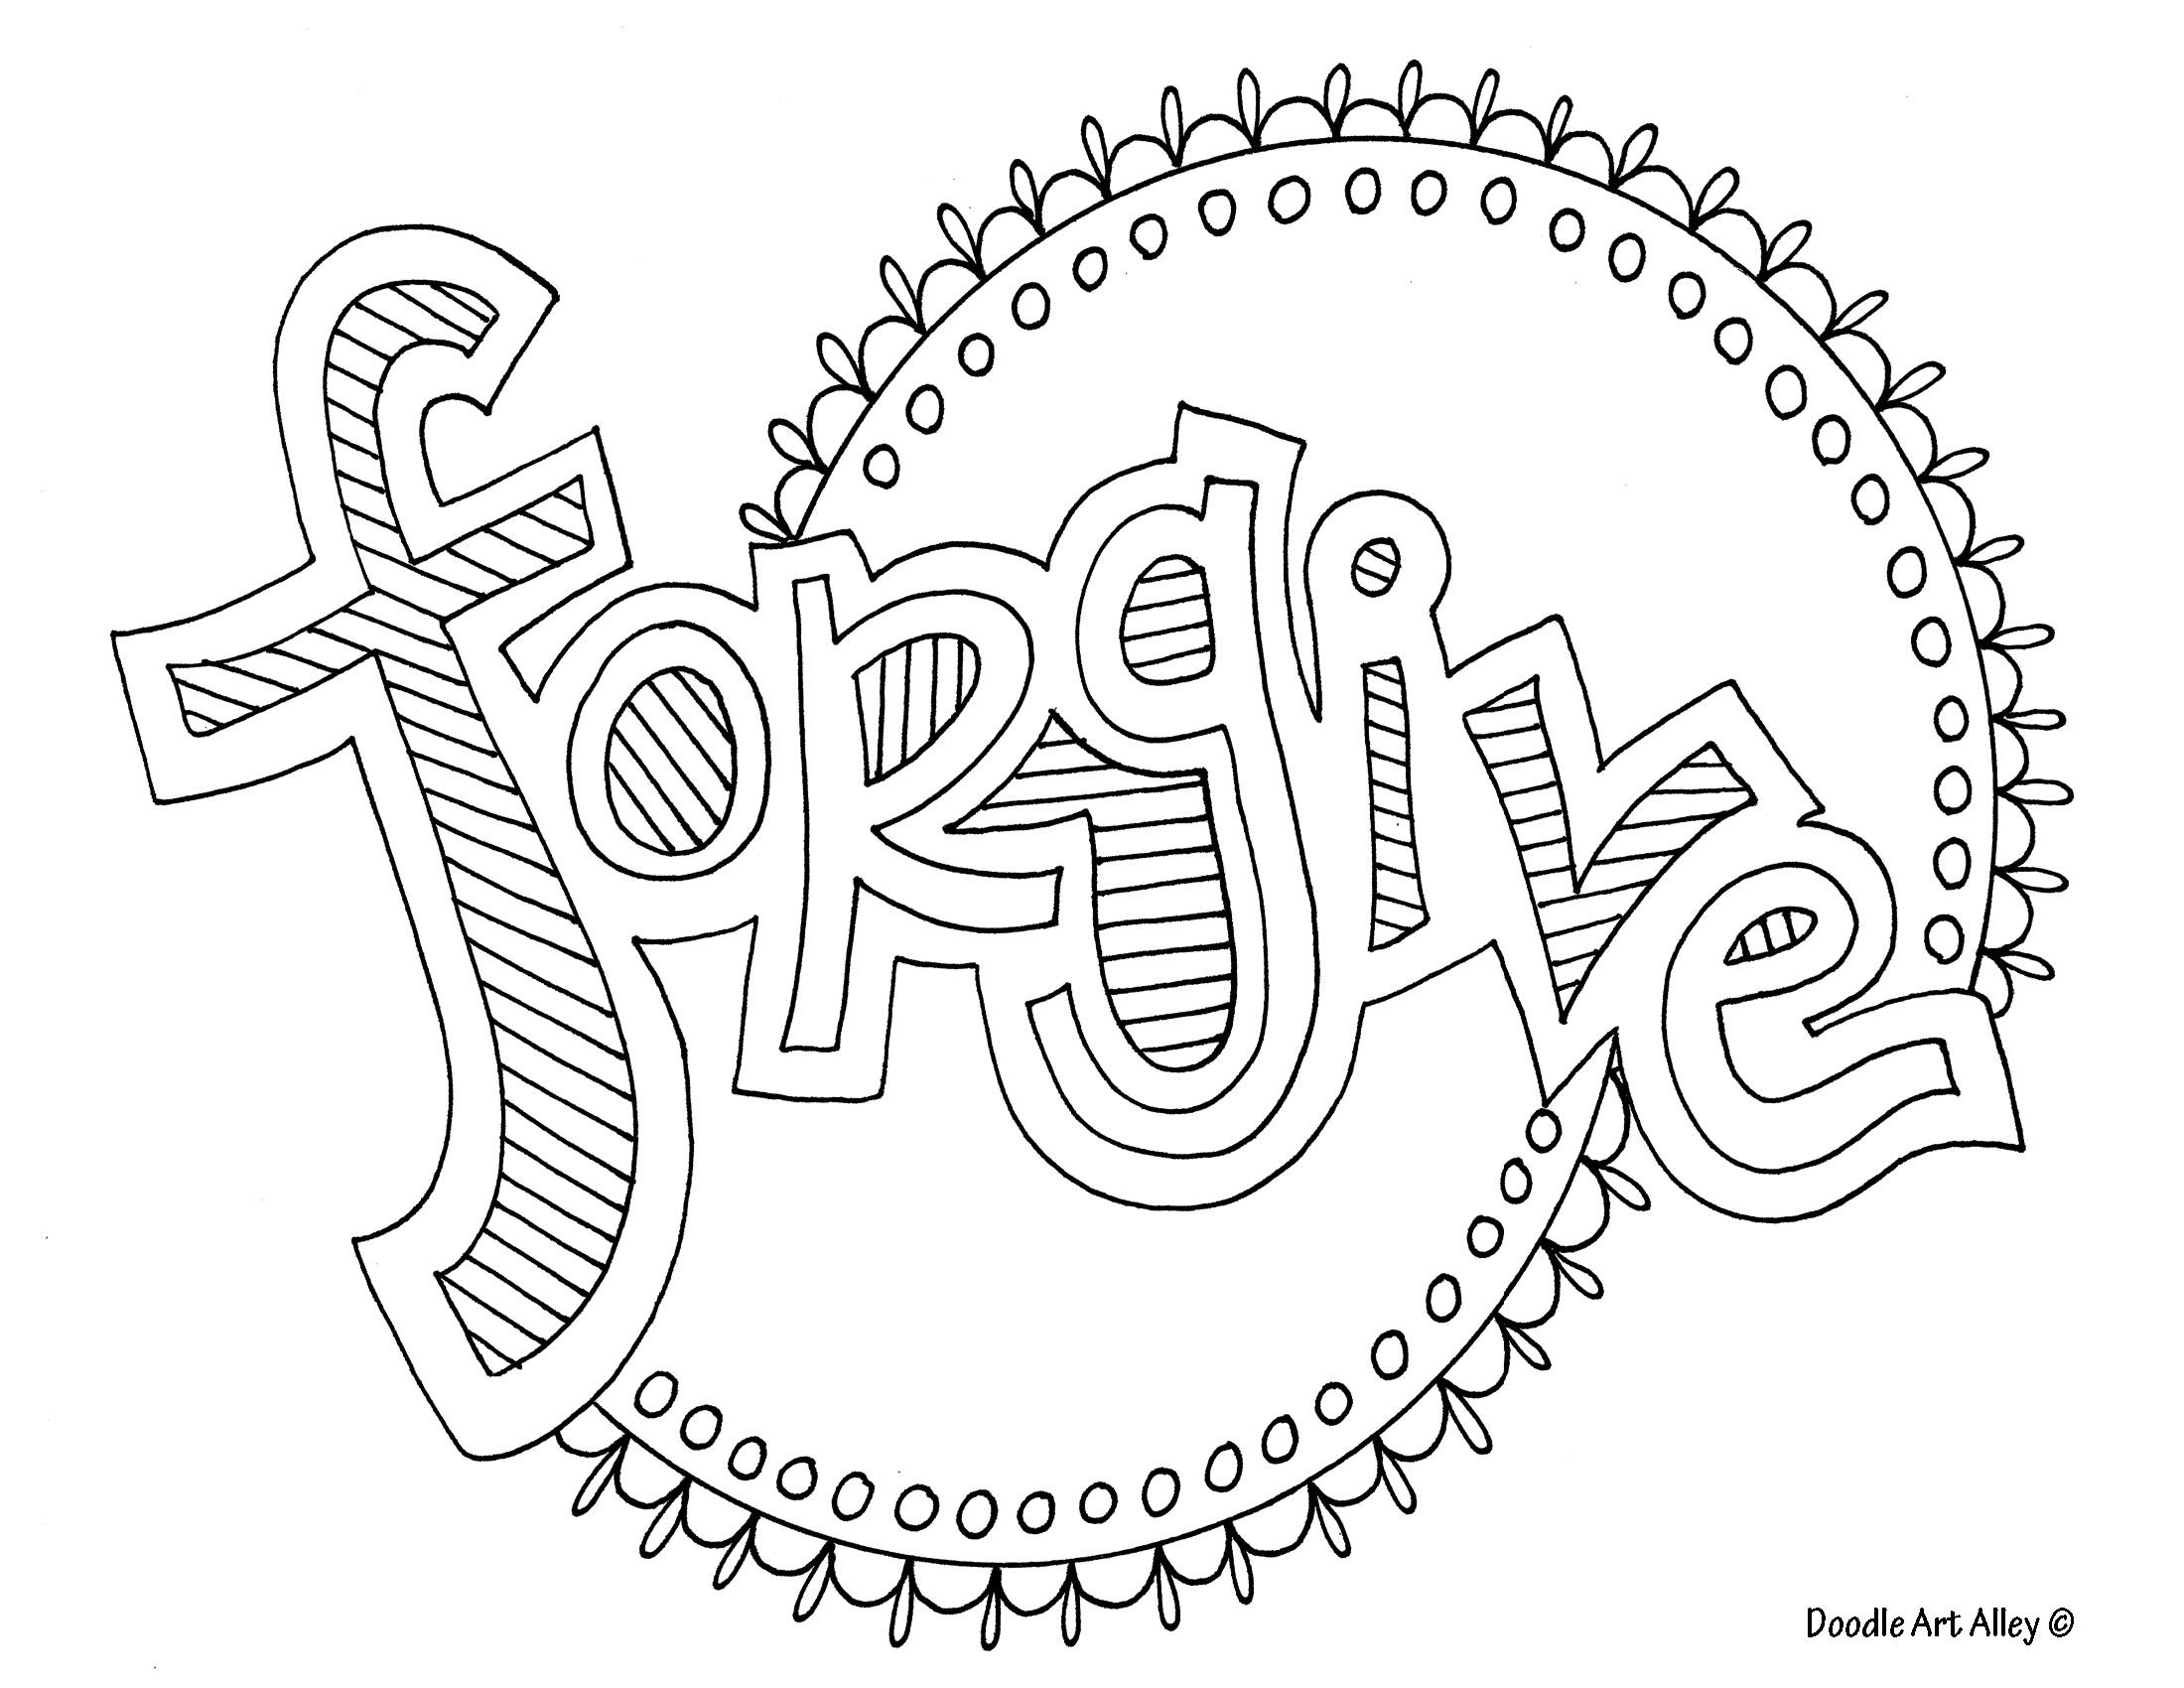 Forgive Http Www Doodle Art Alley Com Christian Coloring